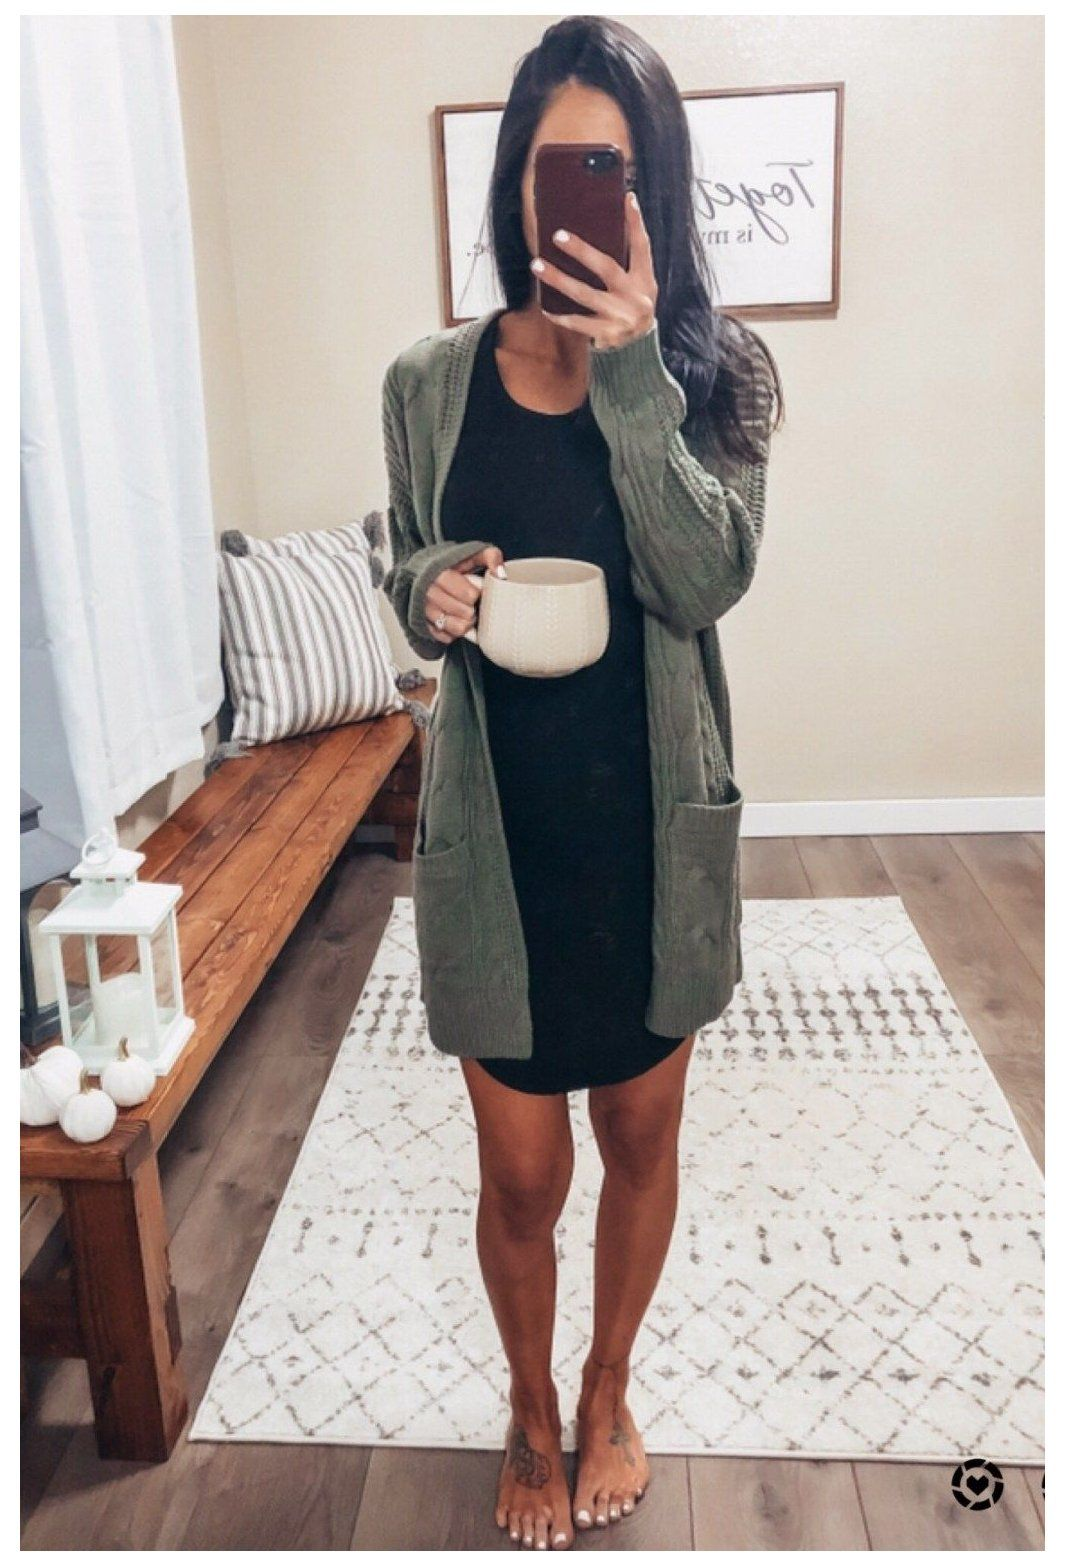 Minimalist Wardrobe Mixing Matching Repeating Dress And Cardigan Outfit Dressandcardiganoutfit If You R In 2021 Cute Winter Outfits Cute Fall Outfits Fashion [ 1566 x 1065 Pixel ]